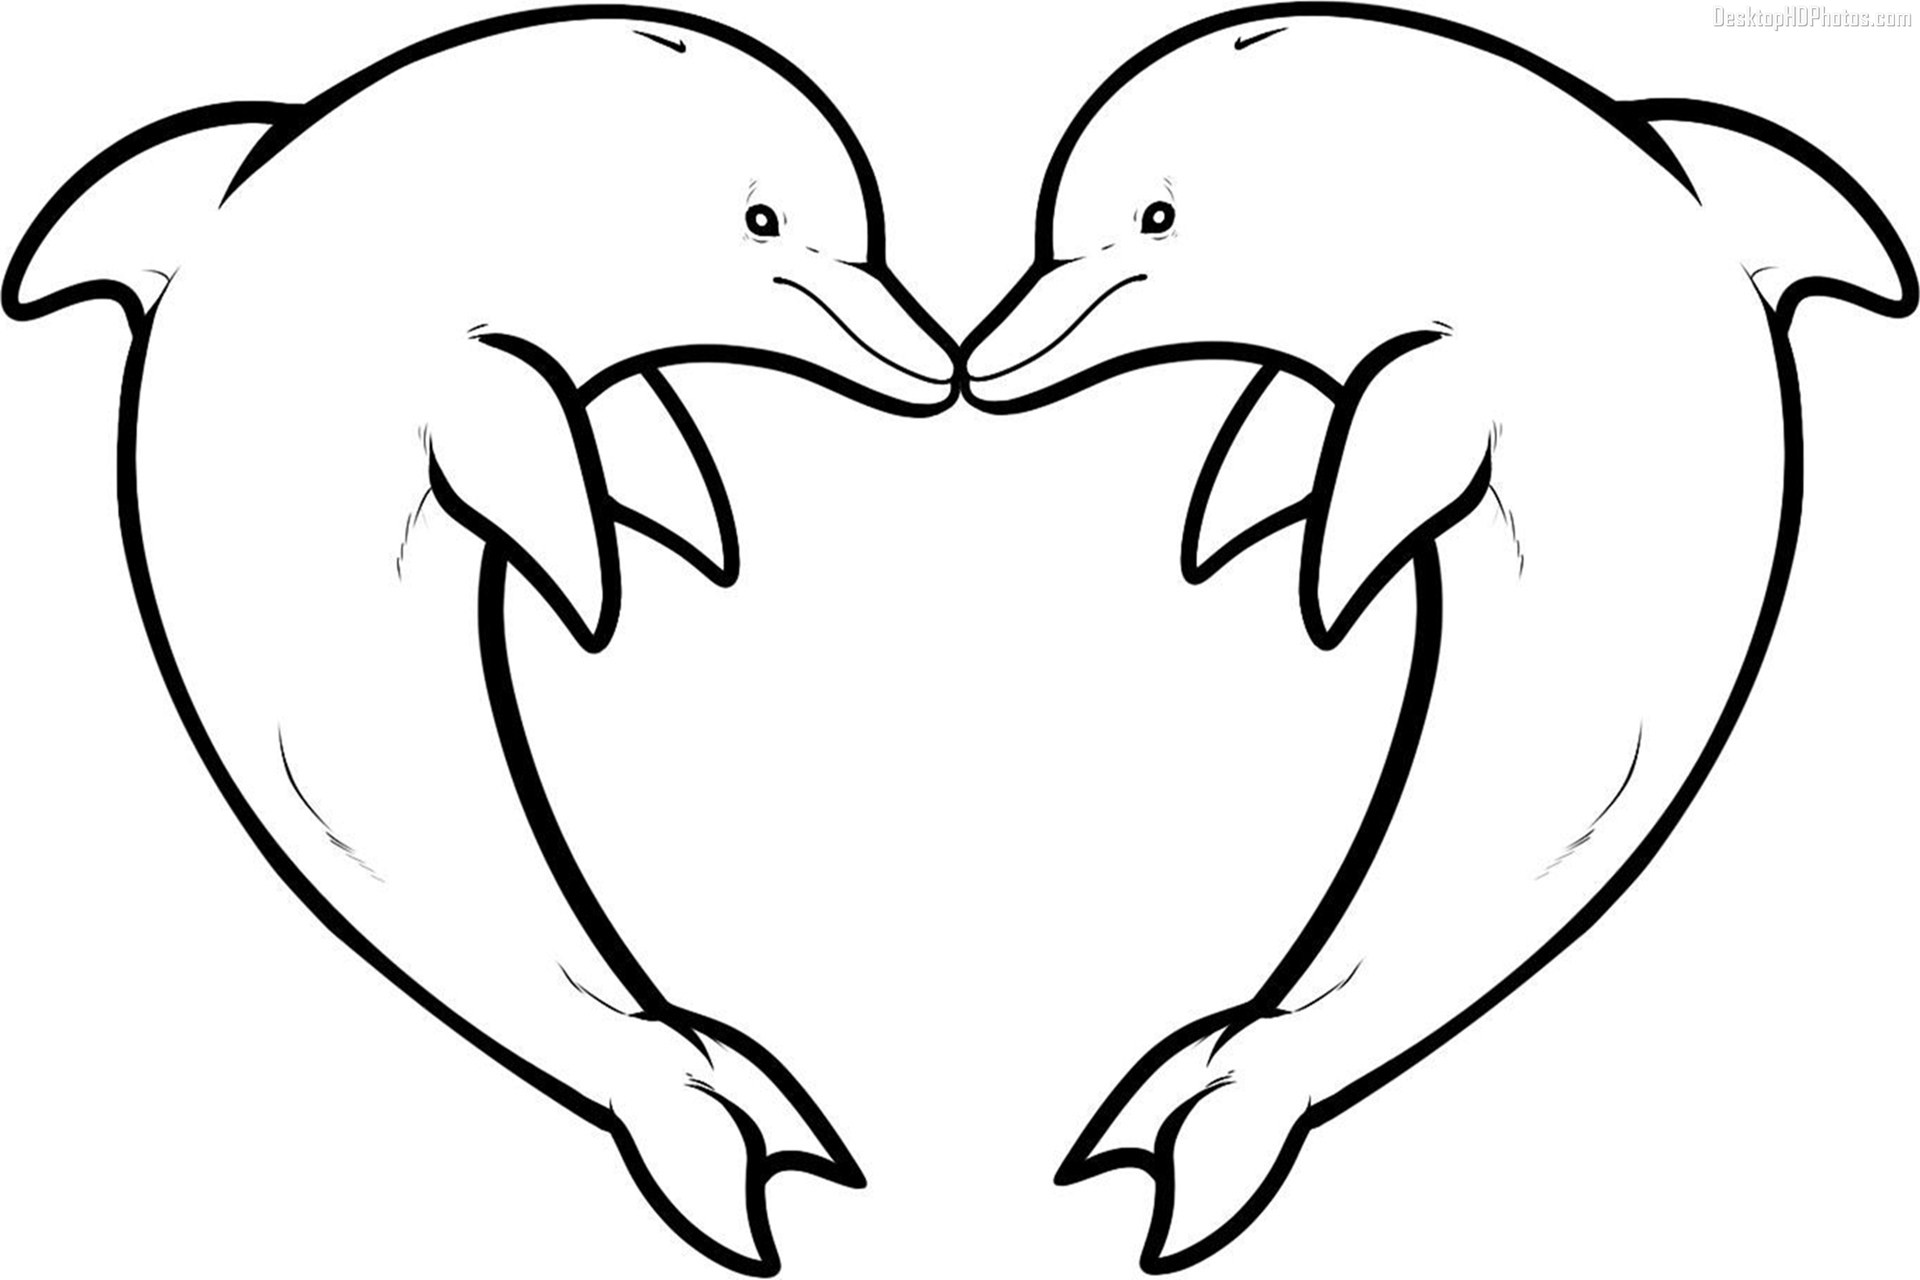 dolphin colouring in free dolphin clipart printable coloring pages outline in colouring dolphin